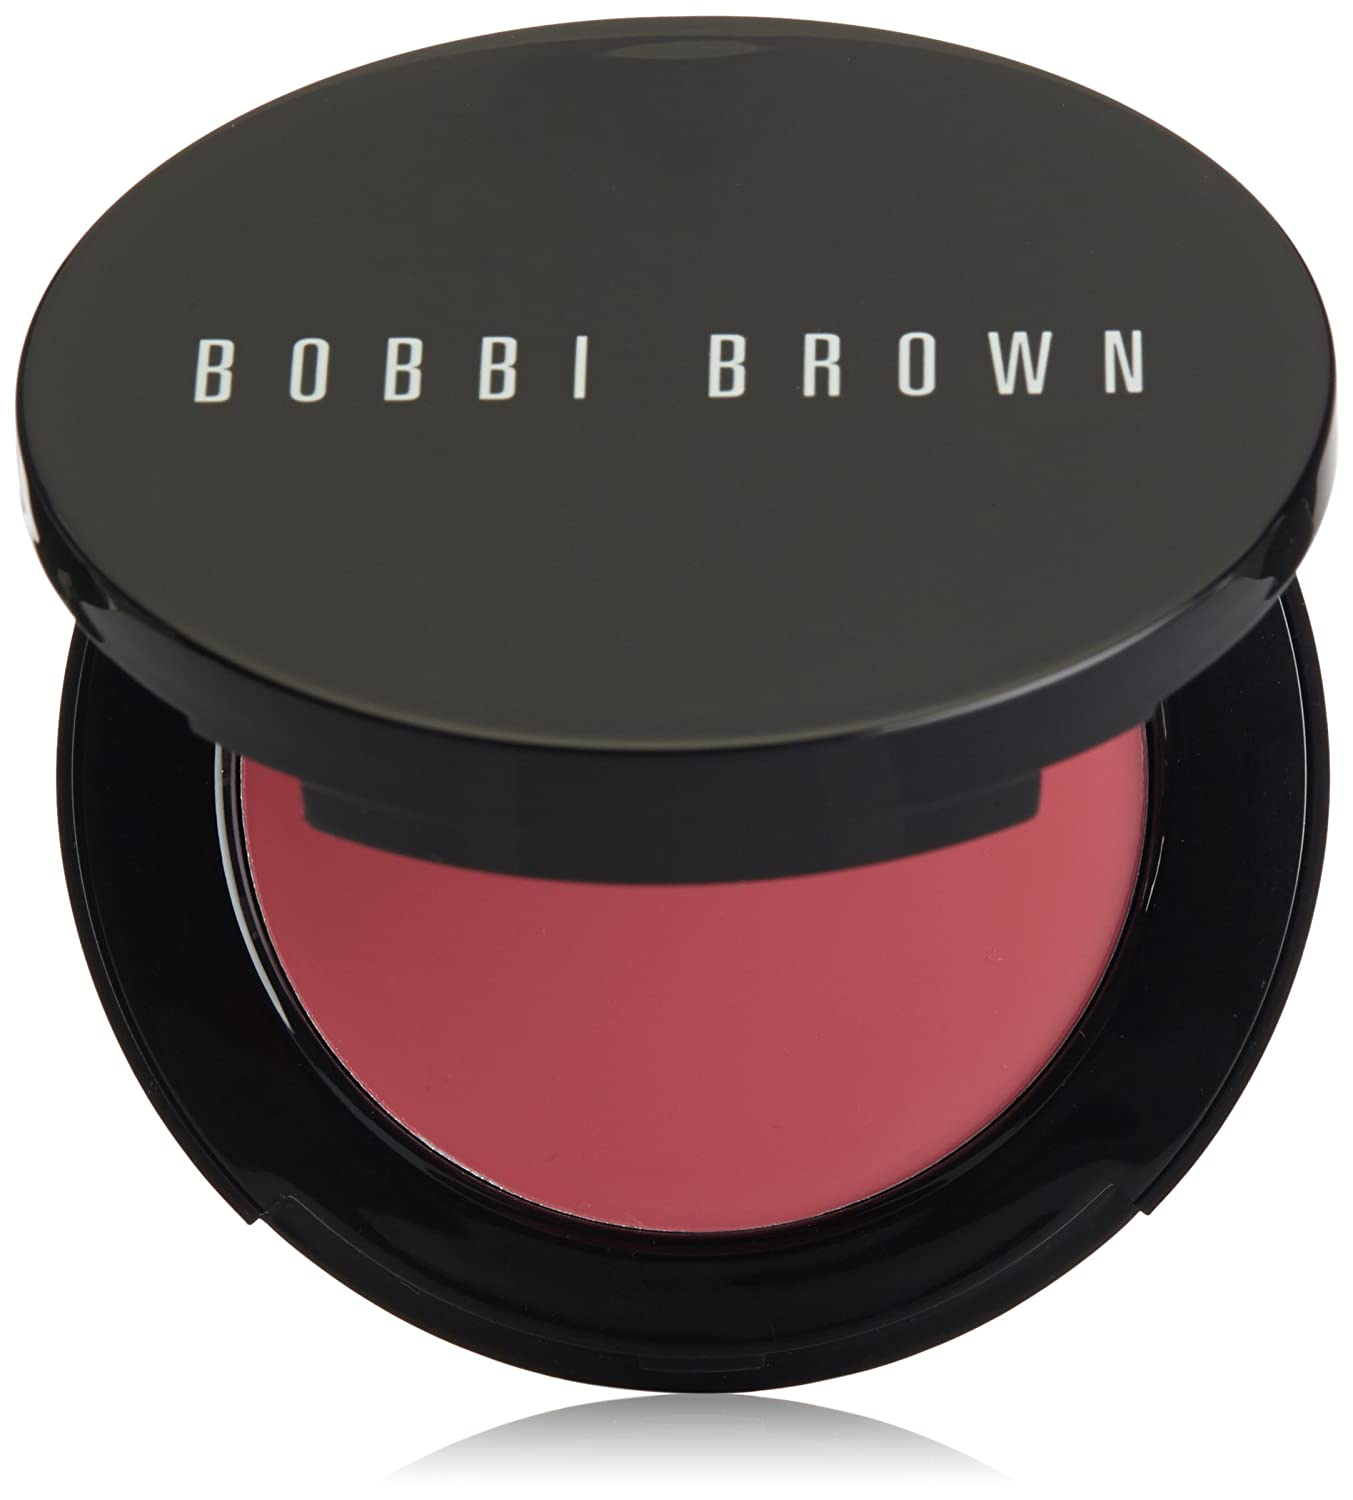 Bobbi Brown Pot Rouge for Lips and Cheeks, No. 11 Pale Pink, 0.13 Ounce